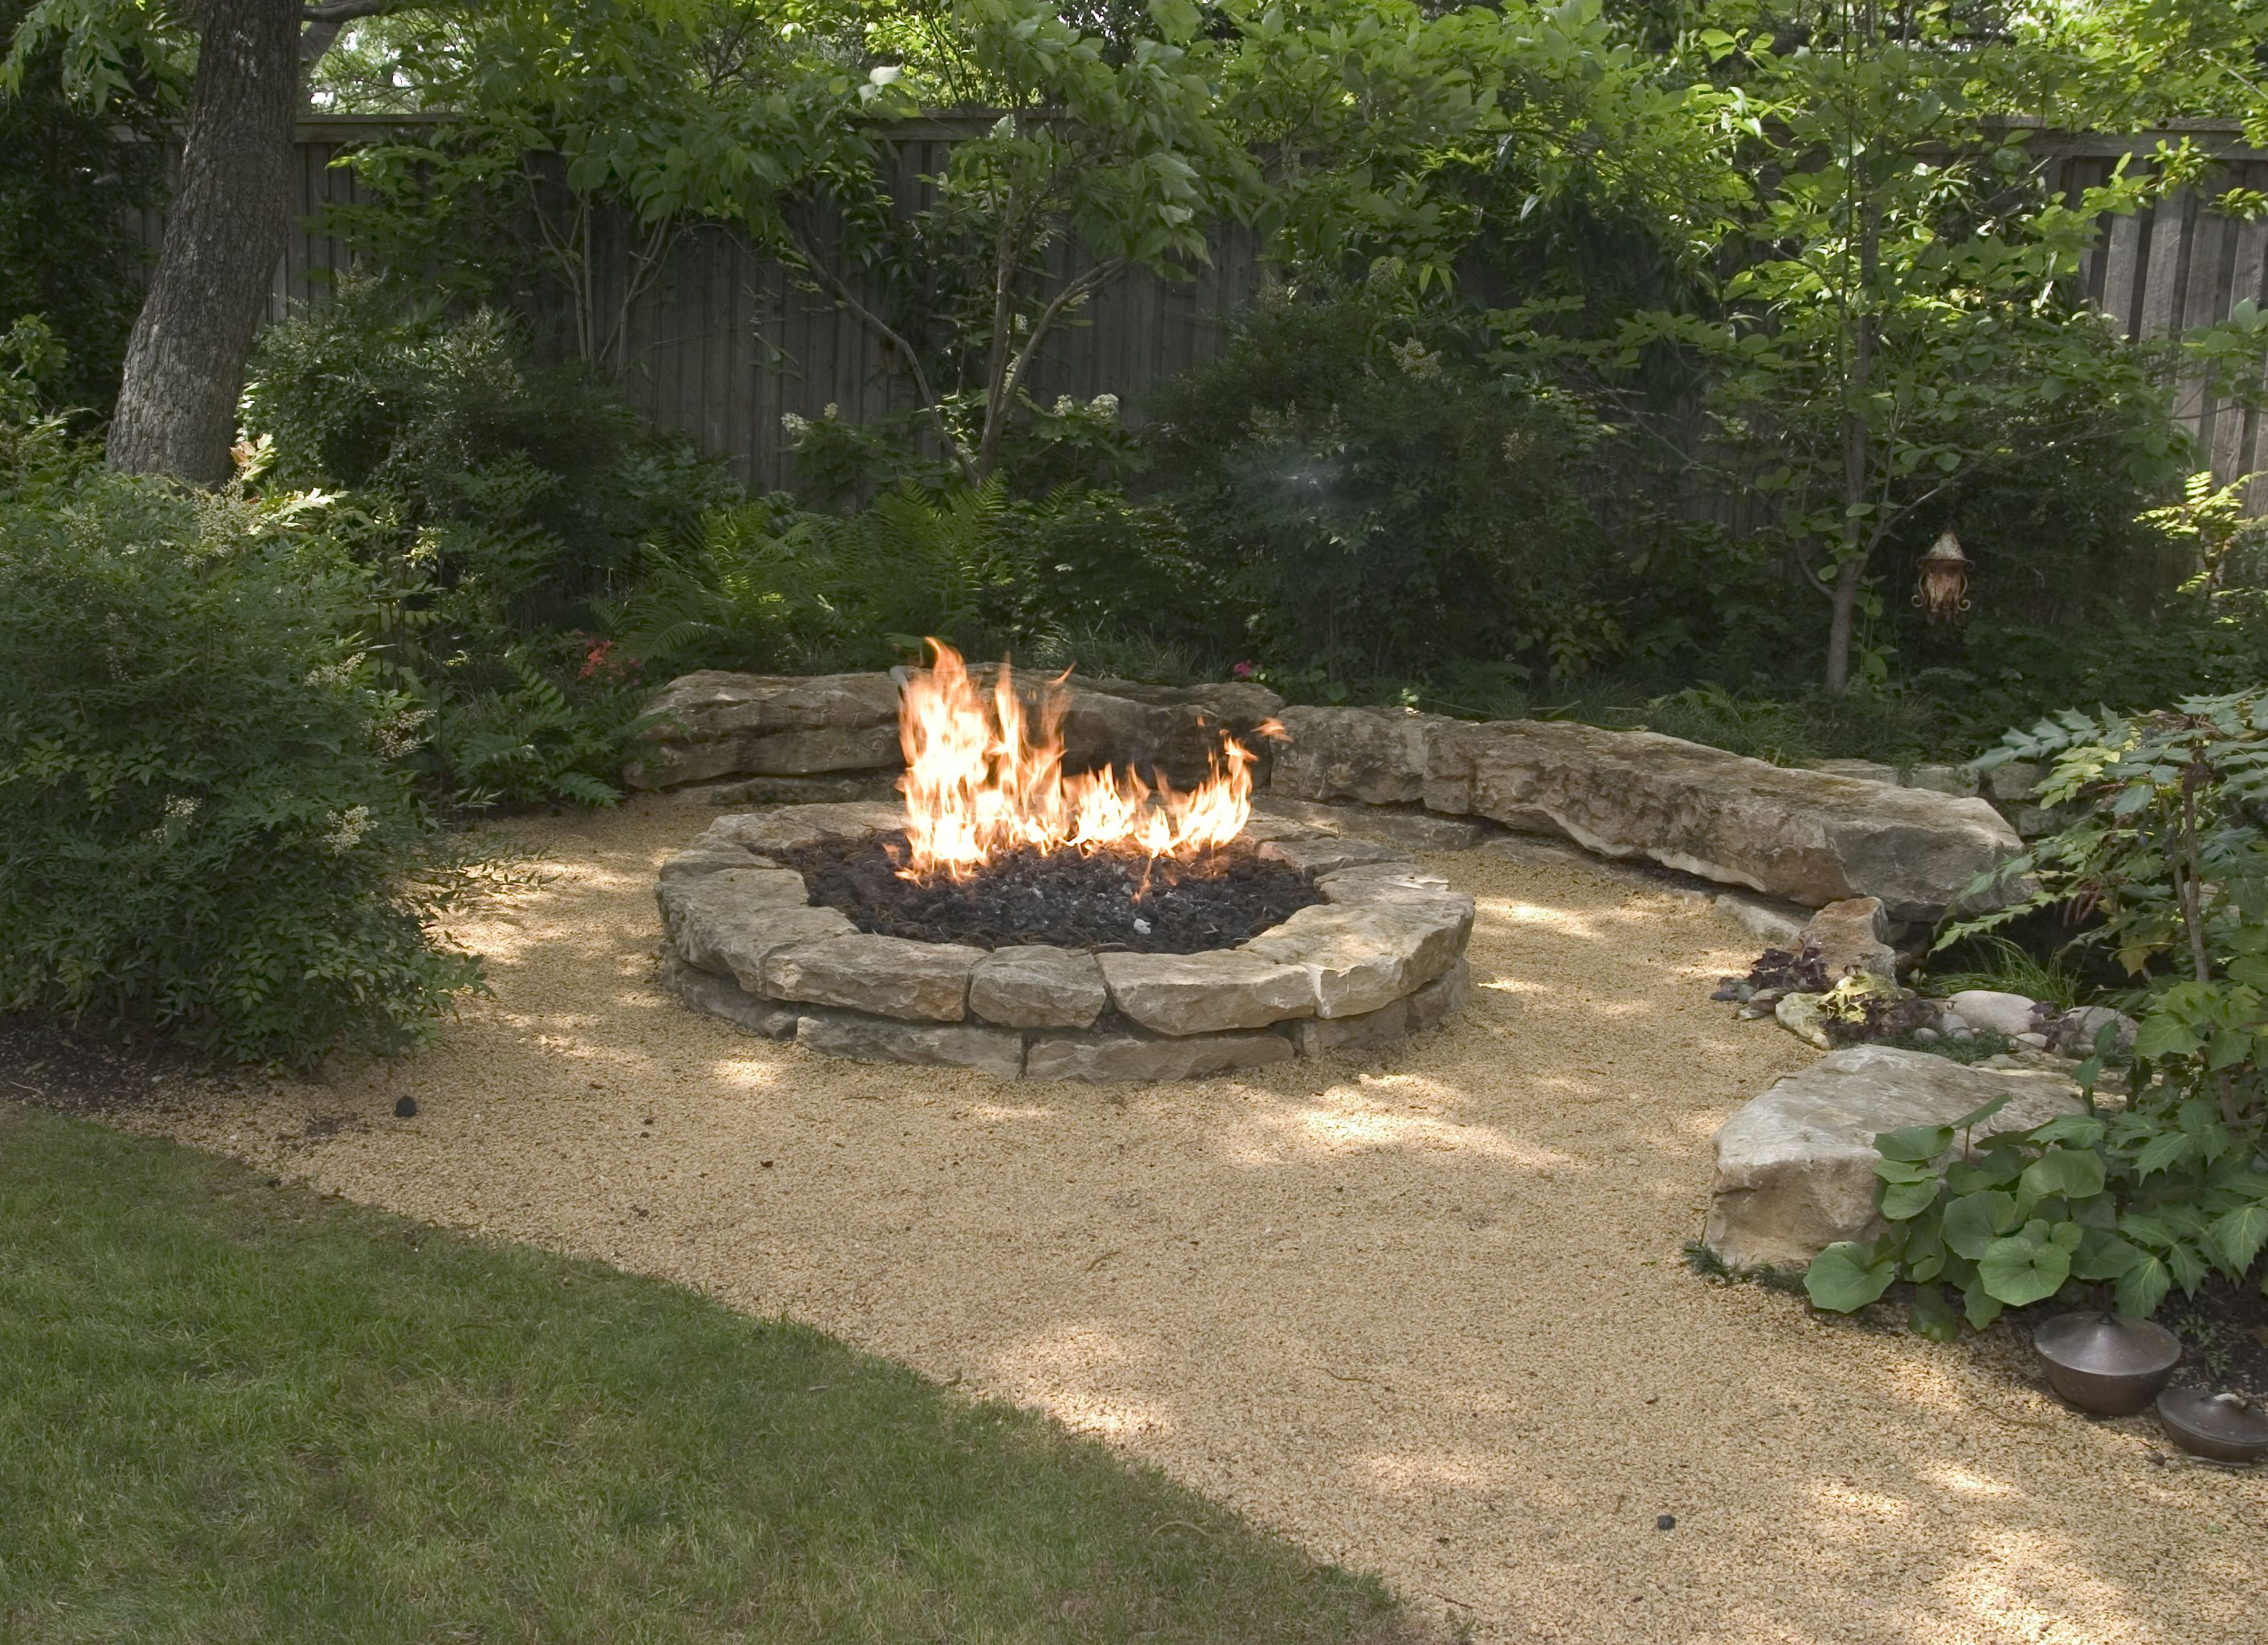 inspiration outdoor fascinating fire pit ideas outdoor decoration for backyard inspiration pictures sophisticated rustic stones fire pit ideas with - Outdoor Fire Pit Design Ideas